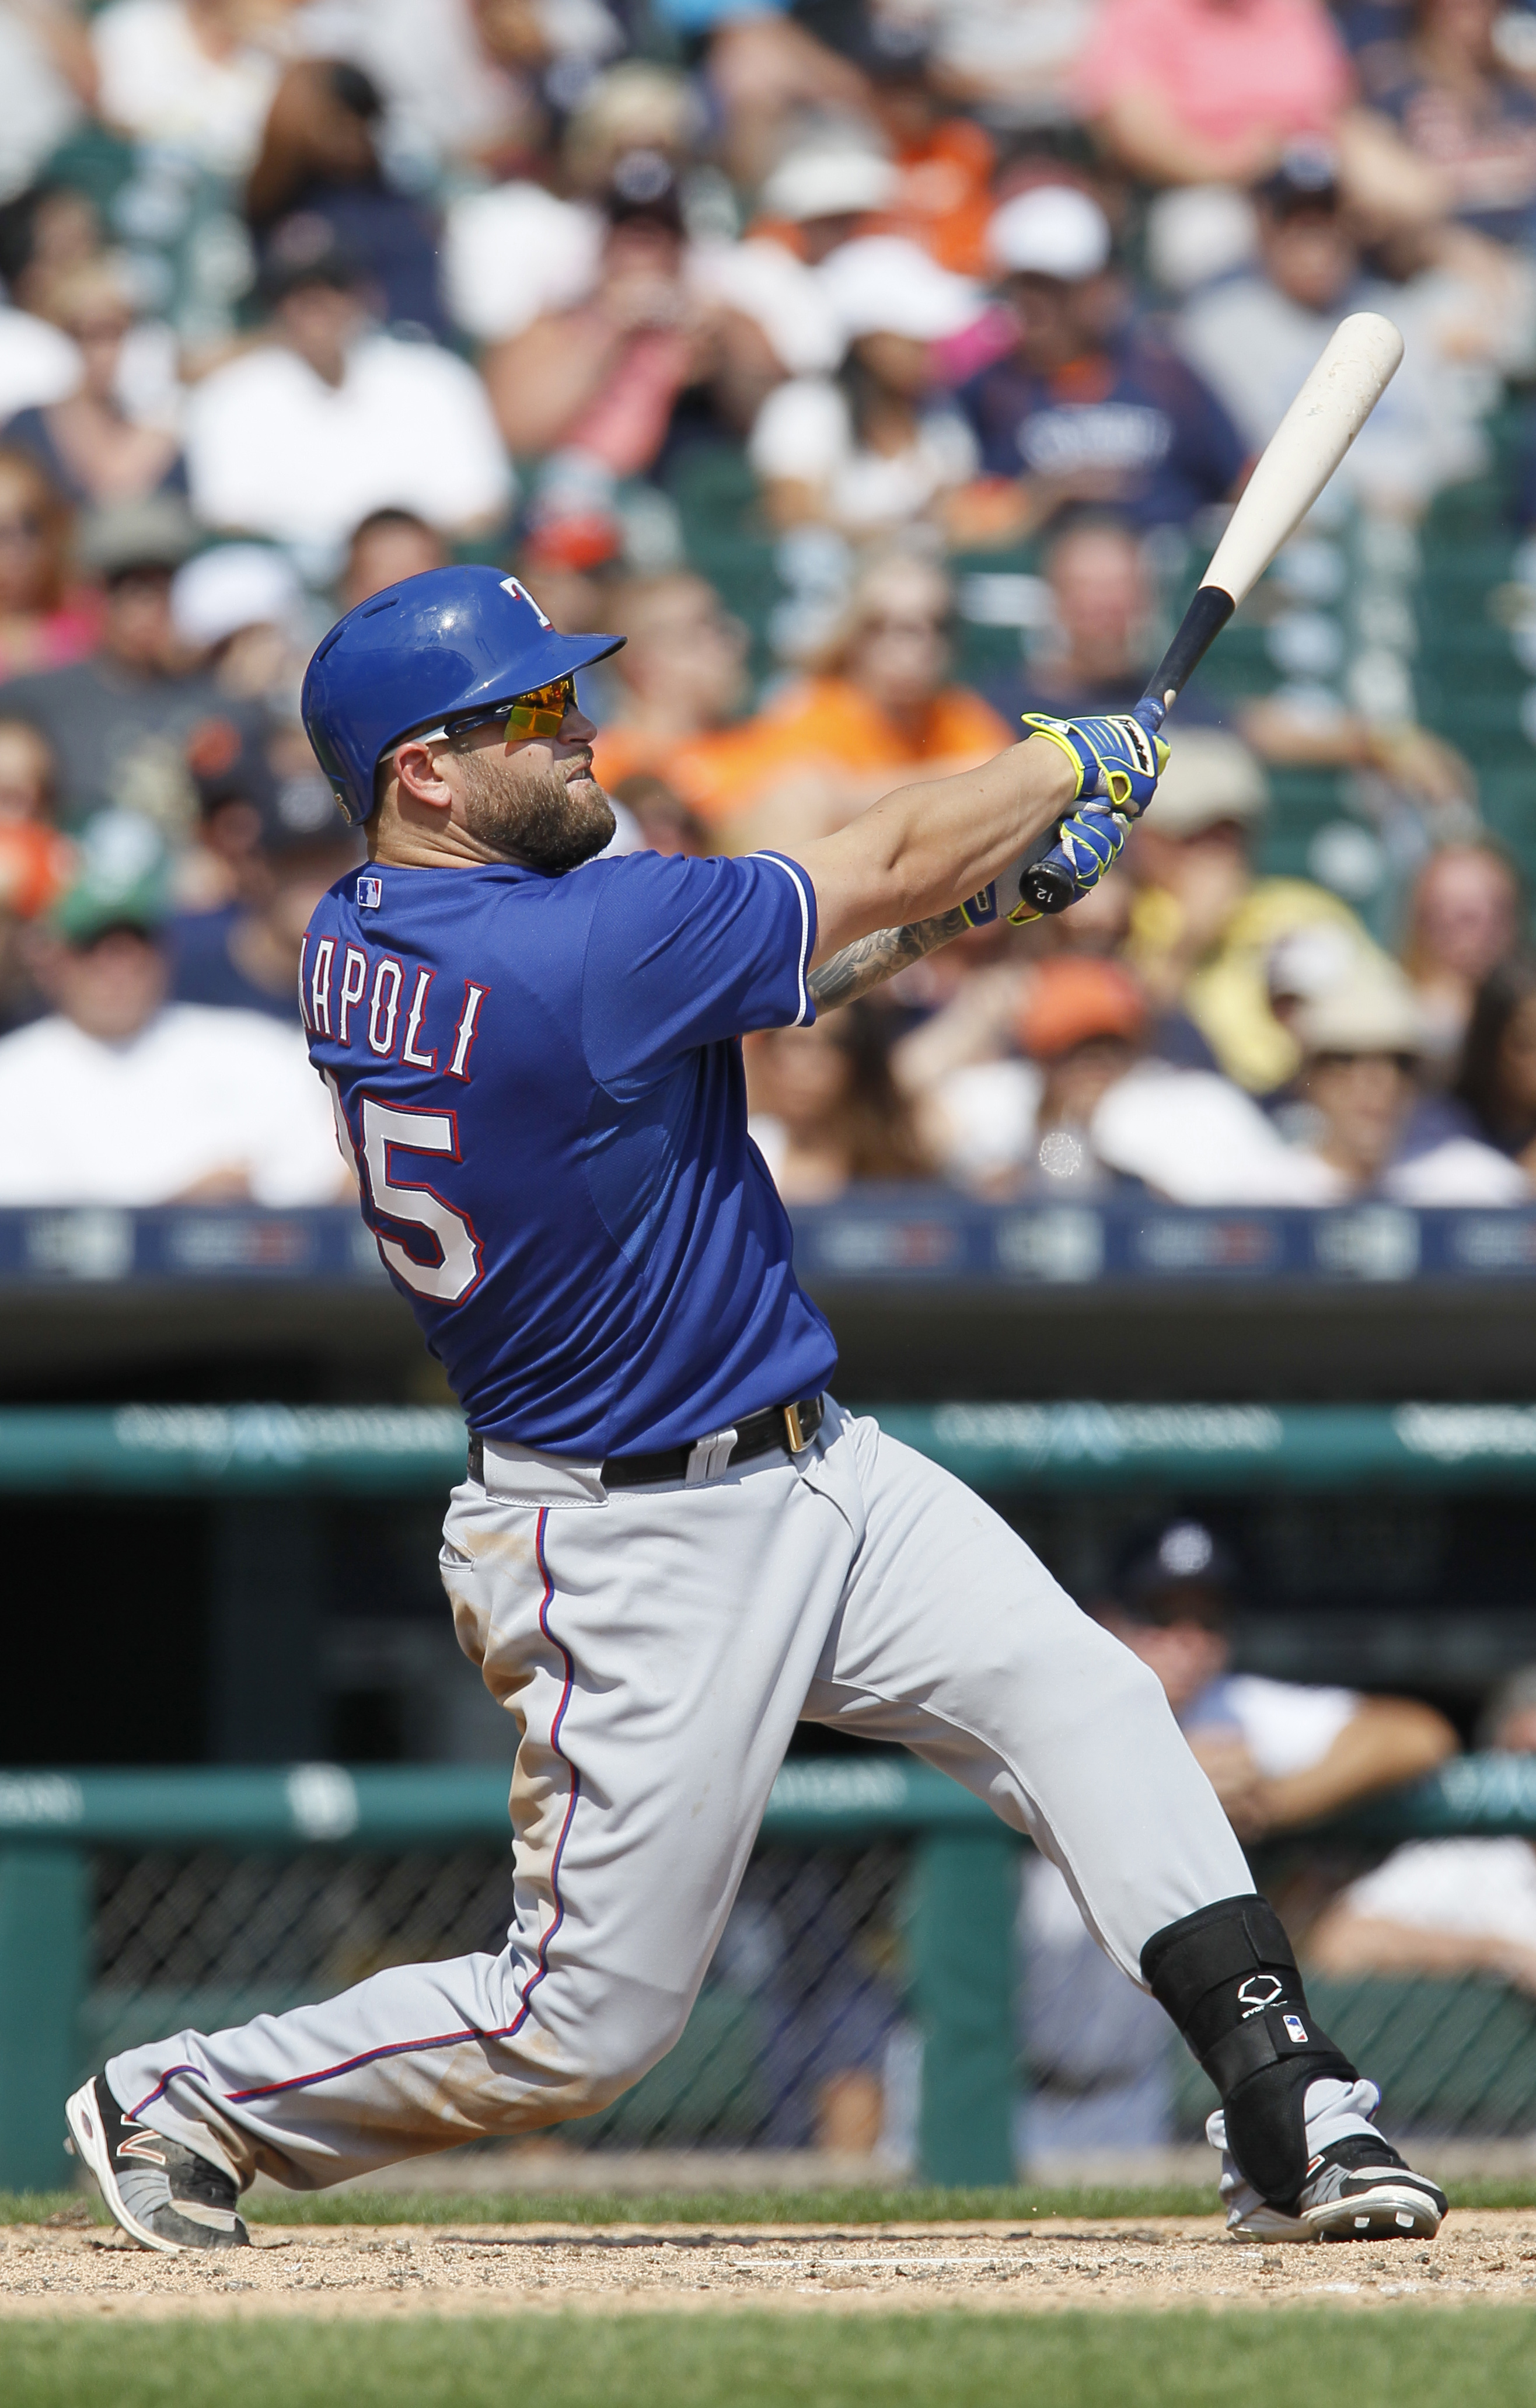 FILE - In this Aug. 23, 2015, file photo, Texas Rangers' Mike Napoli hits a solo home run against the Detroit Tigers during the eighth inning of a baseball game at Comerica Park, in Detroit. Free agent slugger Mike Napoli and the Cleveland Indians have fi